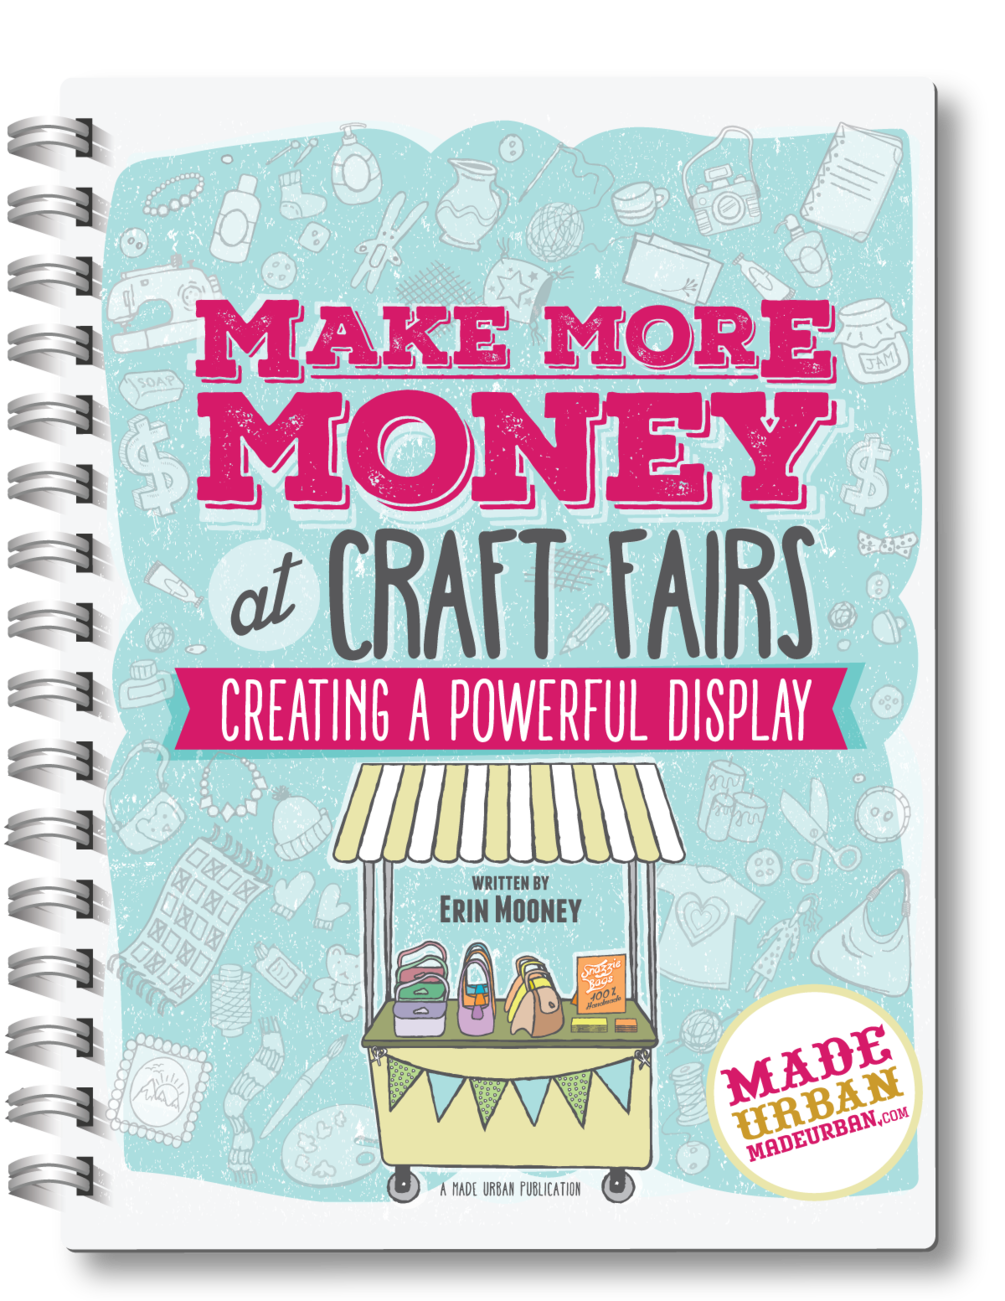 MAKE MORE MONEY AT CRAFT FAIRS - Creating a Powerful Display #craftstosell